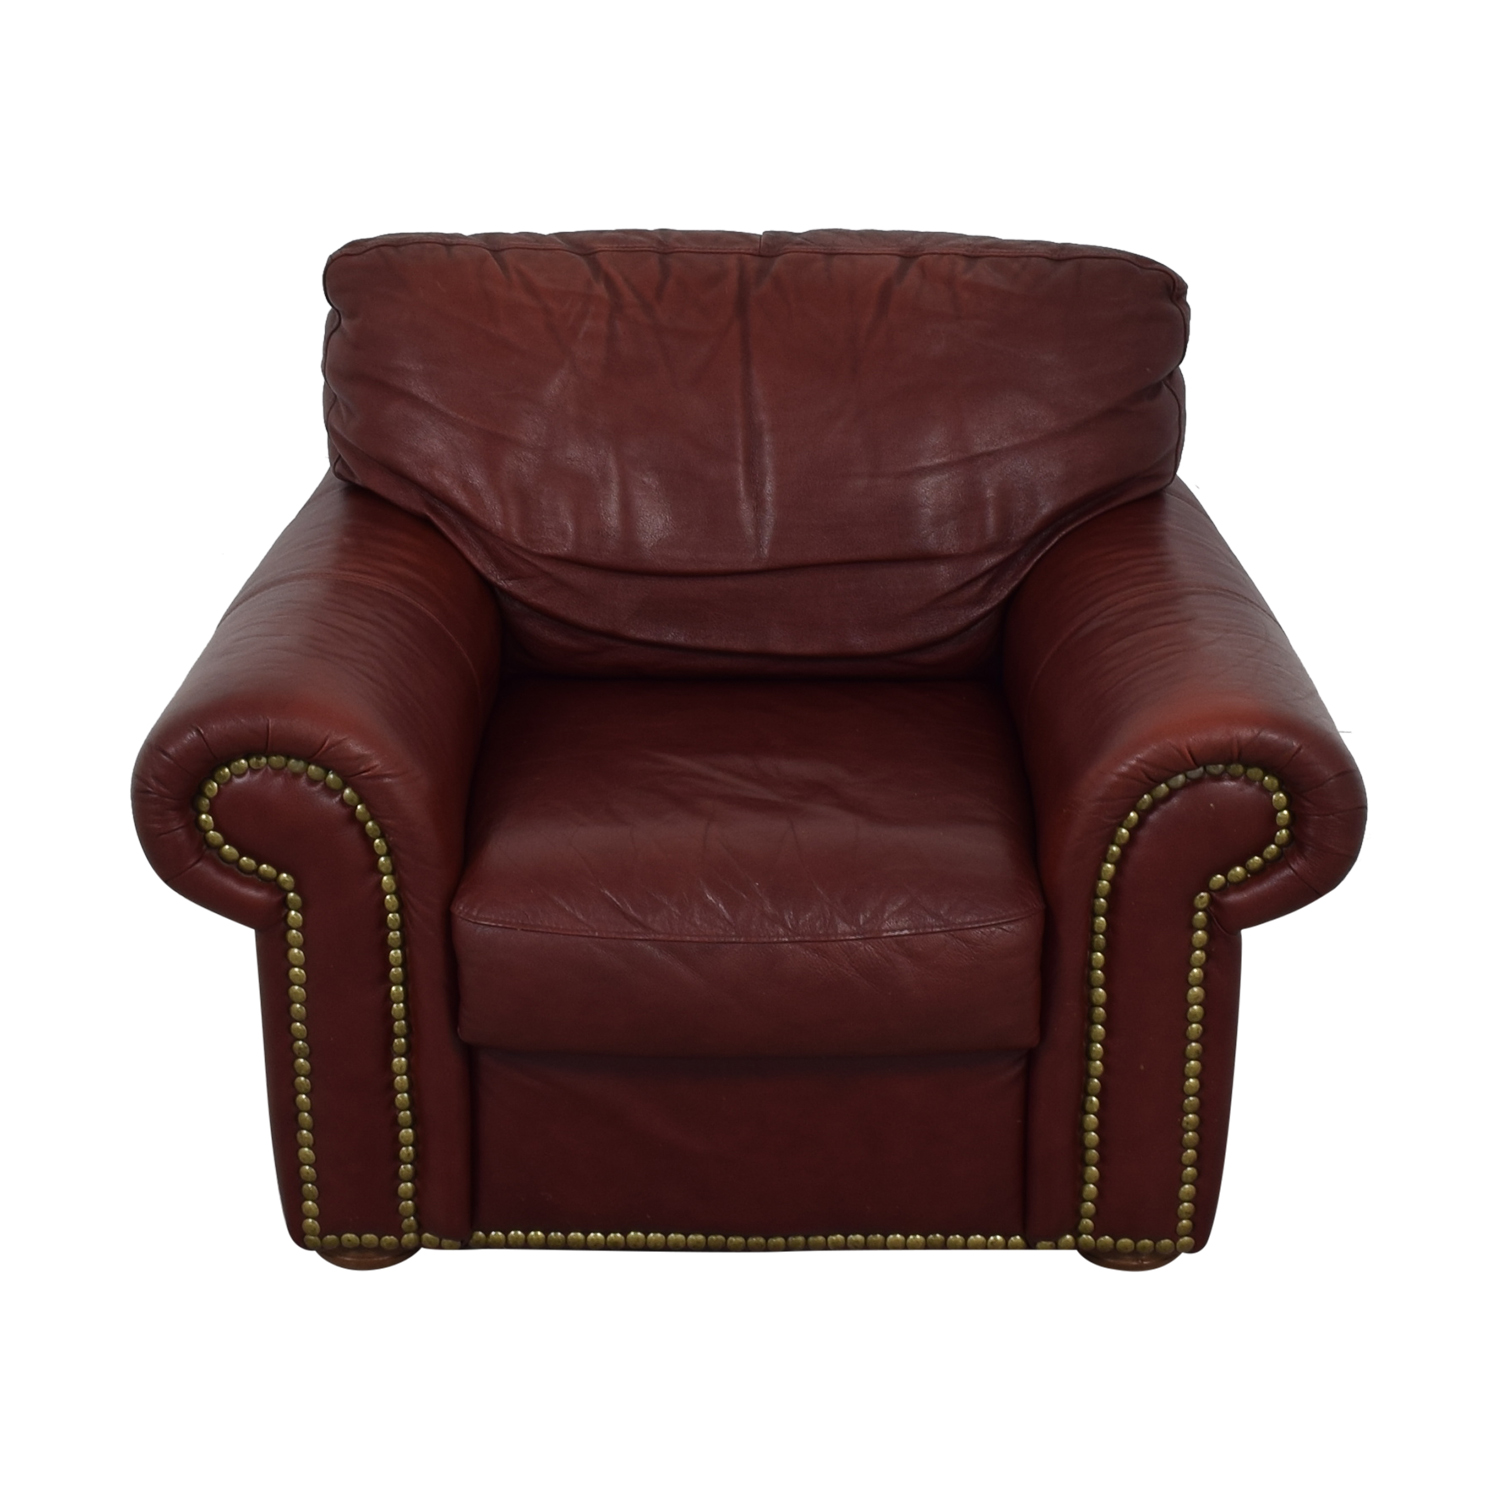 Enjoyable 90 Off Macys Macys Burgundy Nail Head Accent Chair Chairs Machost Co Dining Chair Design Ideas Machostcouk